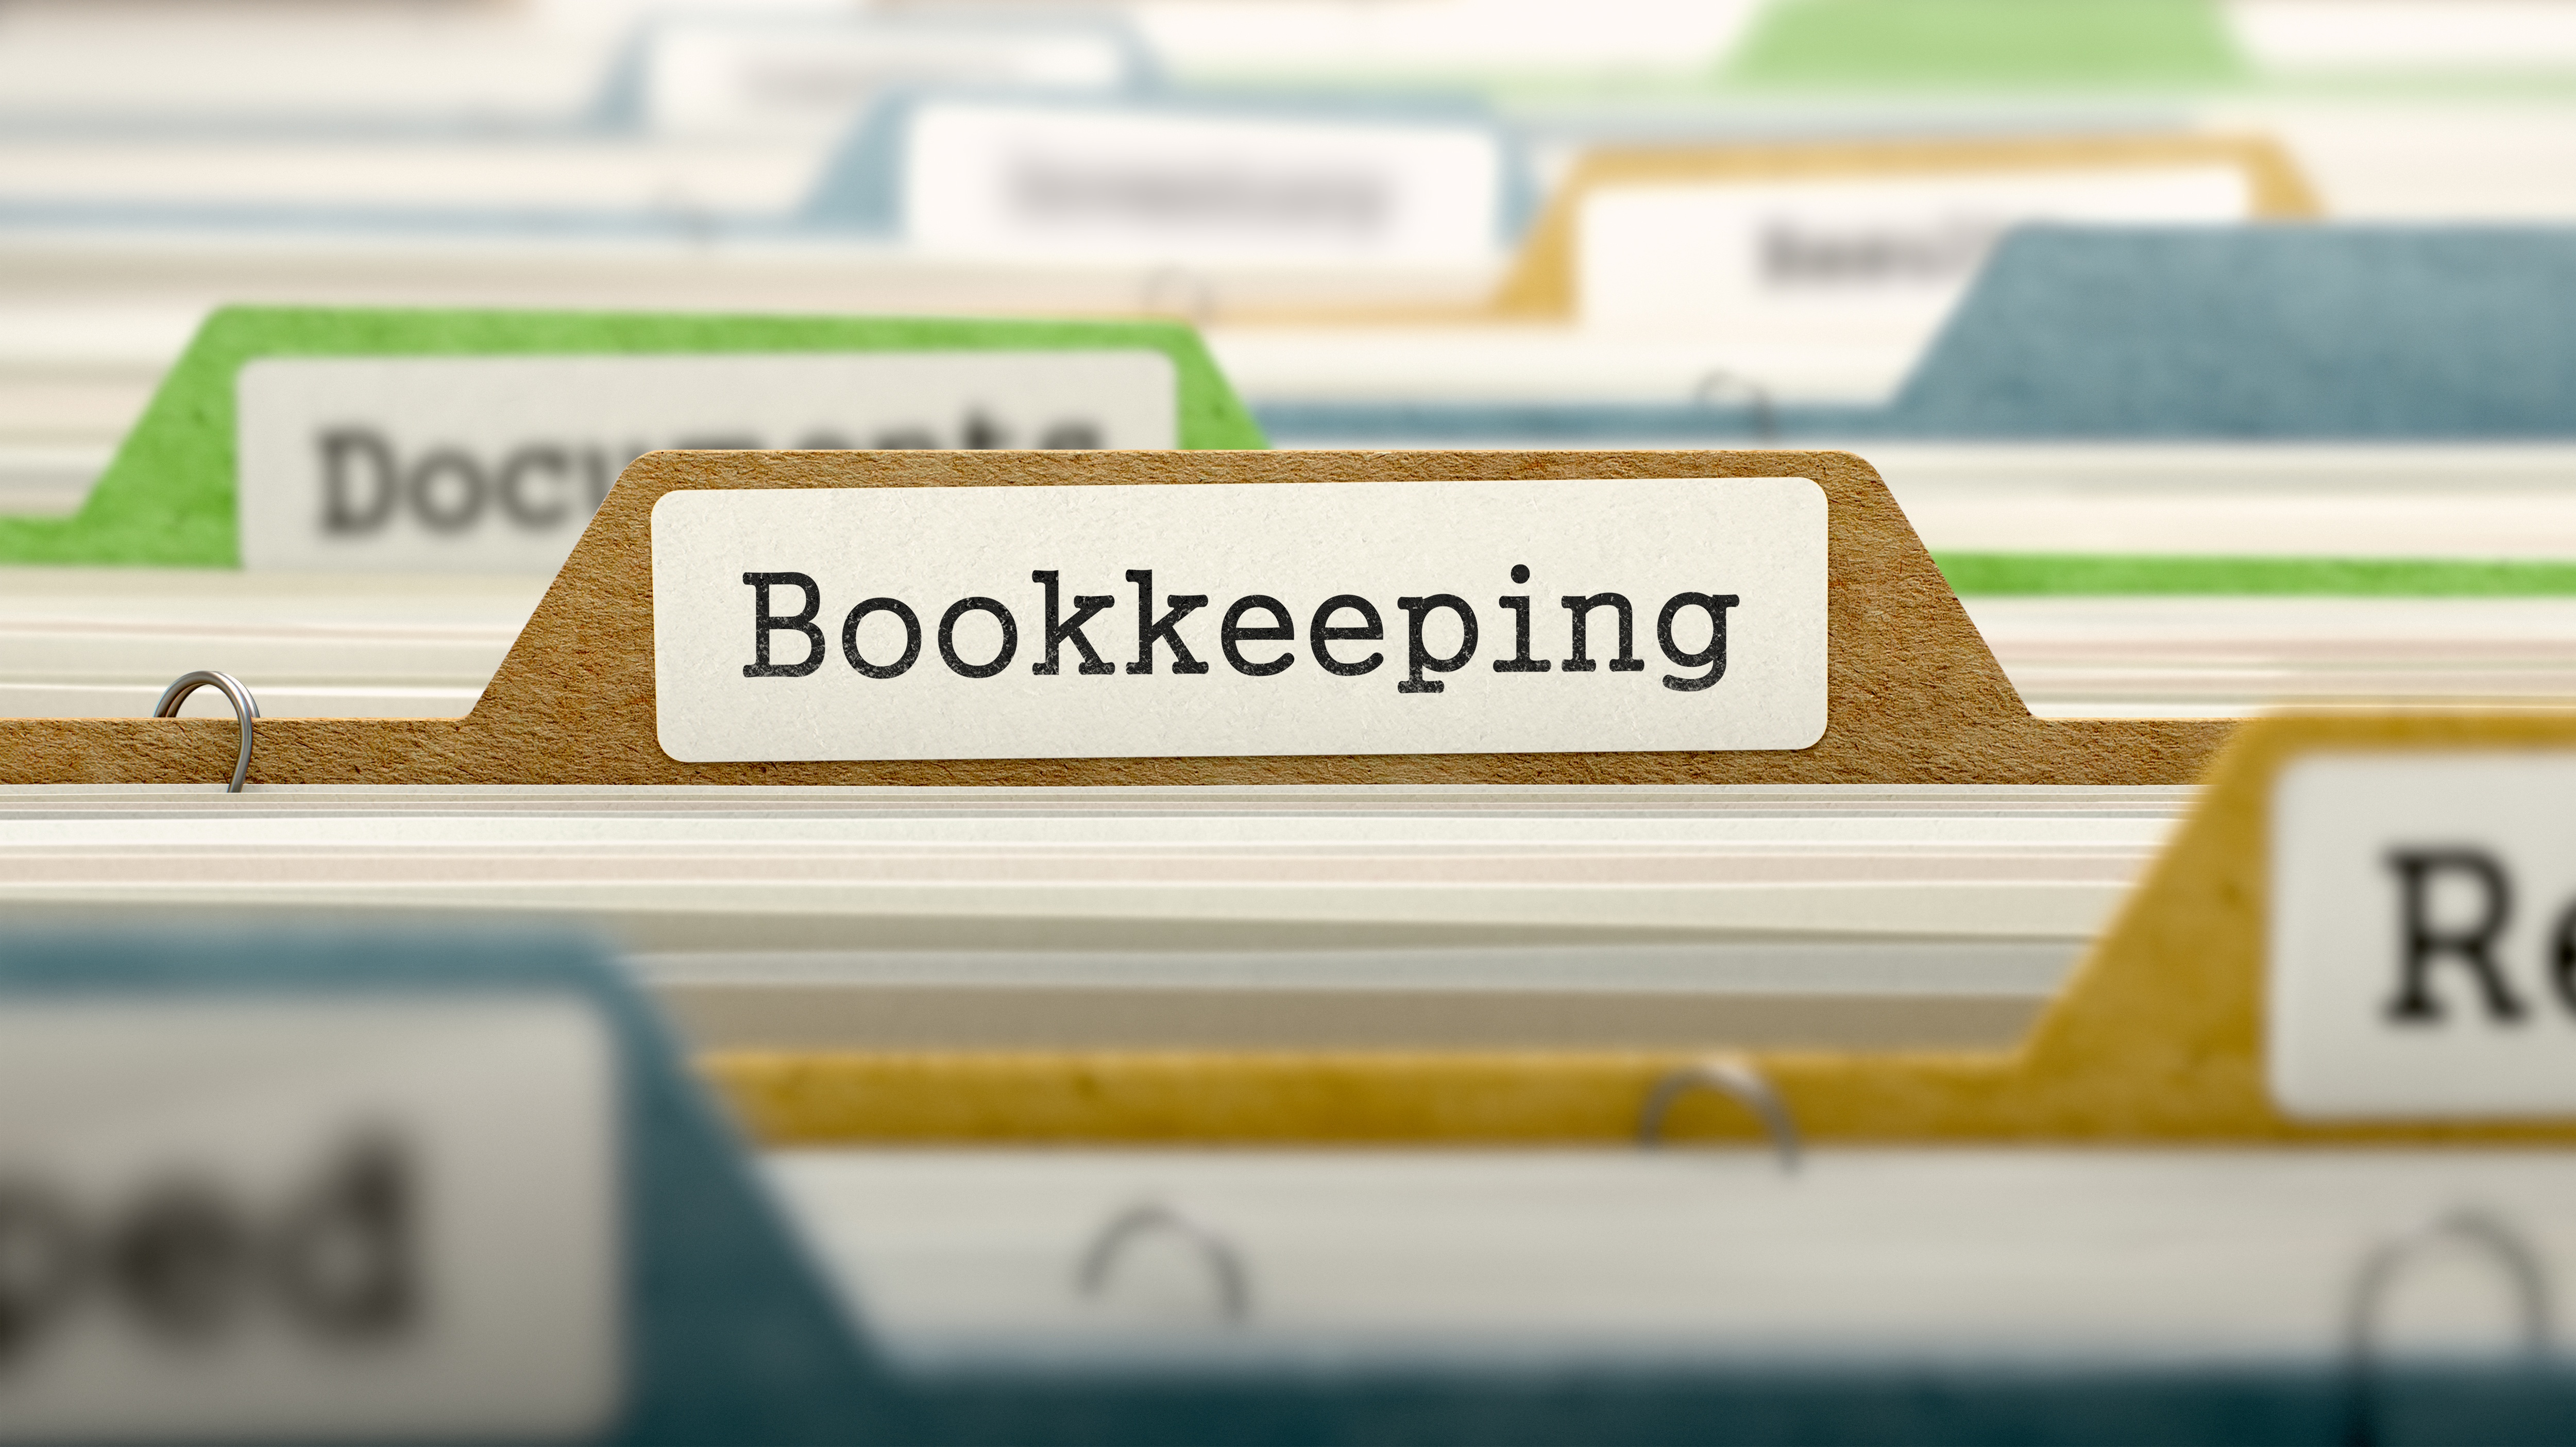 TheOfficeSquad - Bookkeeping Services